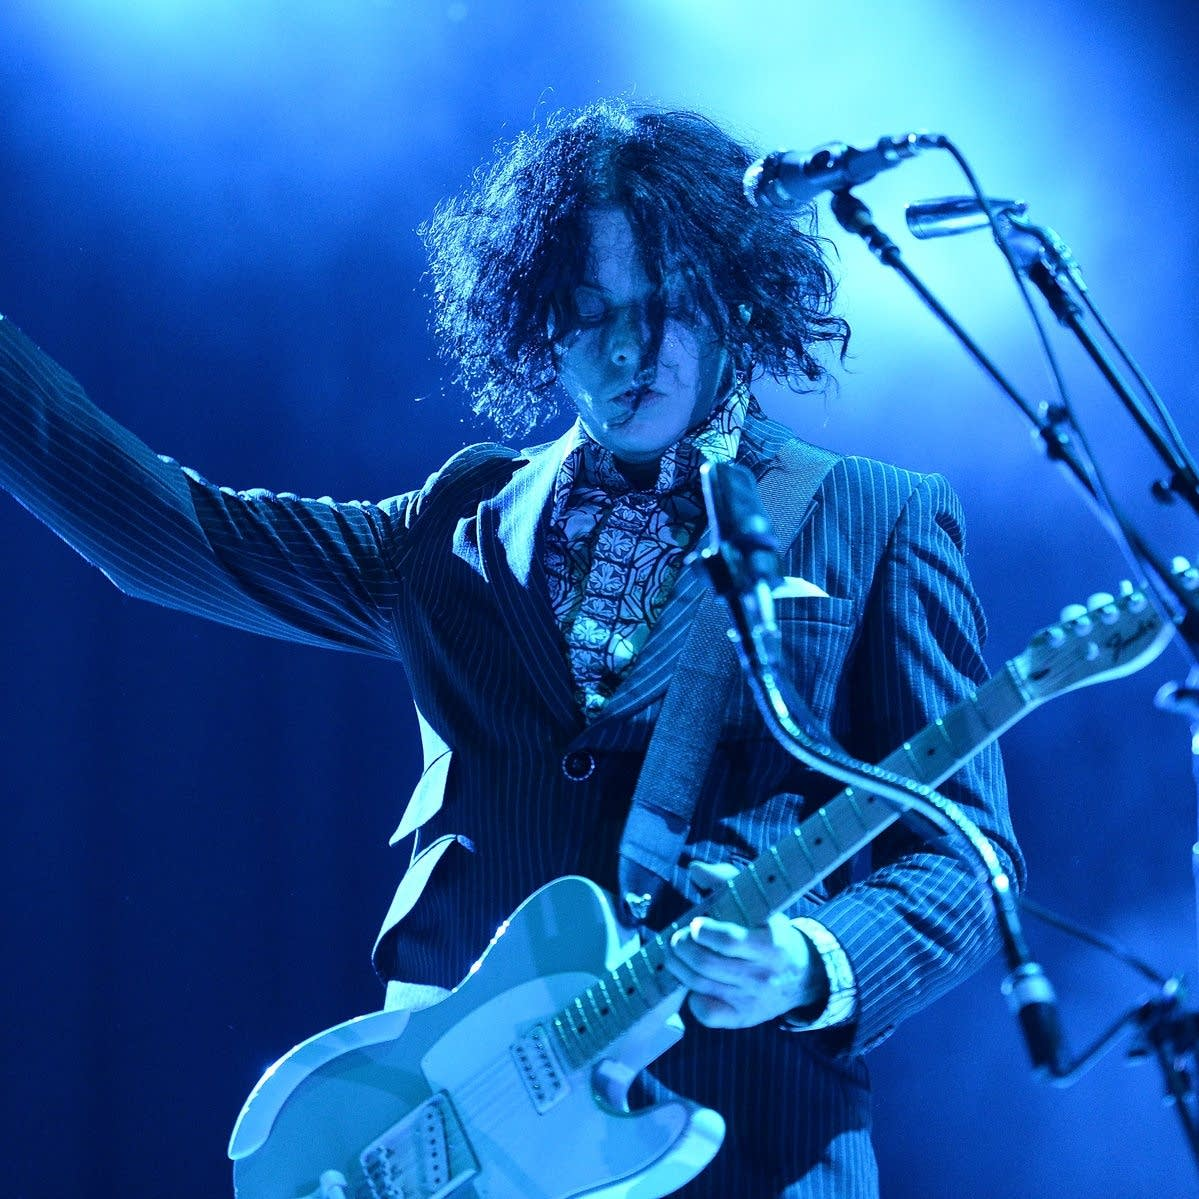 Jack White performs at the 2014 Bonnaroo Music & Arts Festival